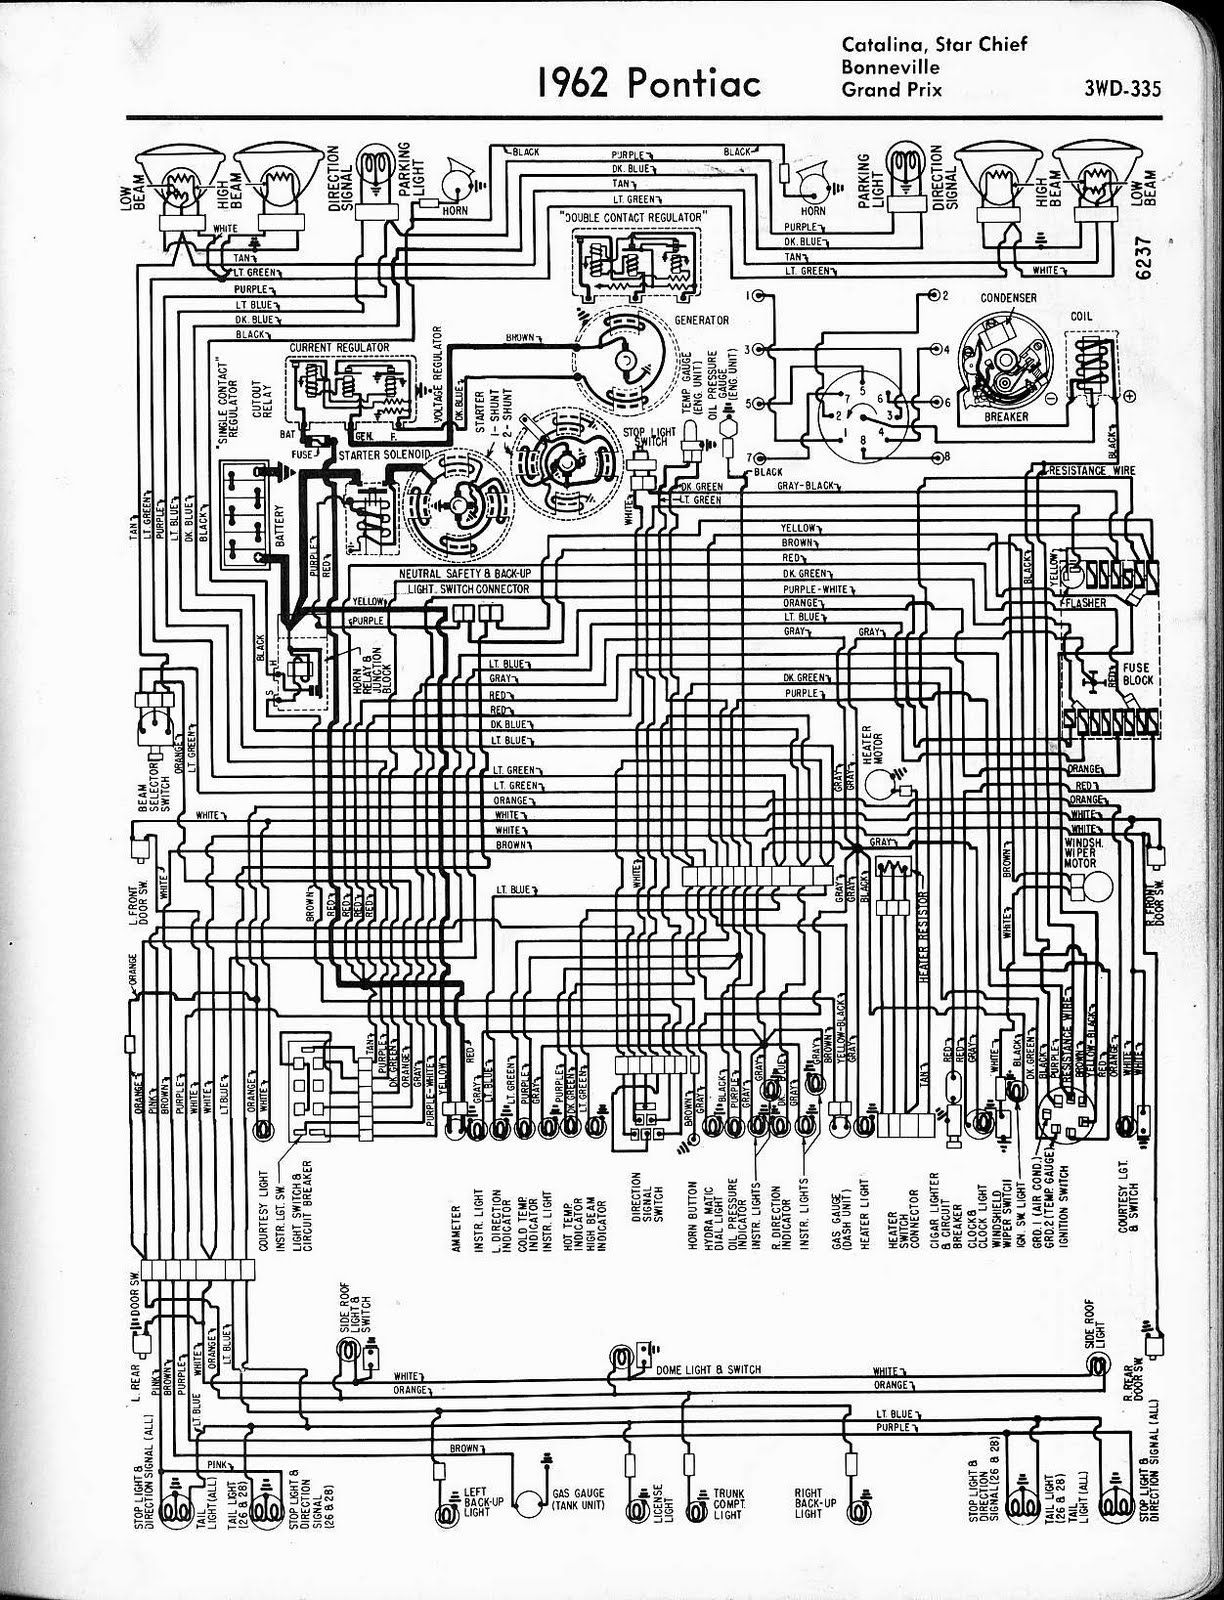 Pontiac Engine Wiring Diagram : Pontiac bonneville engine wiring diagram get free image